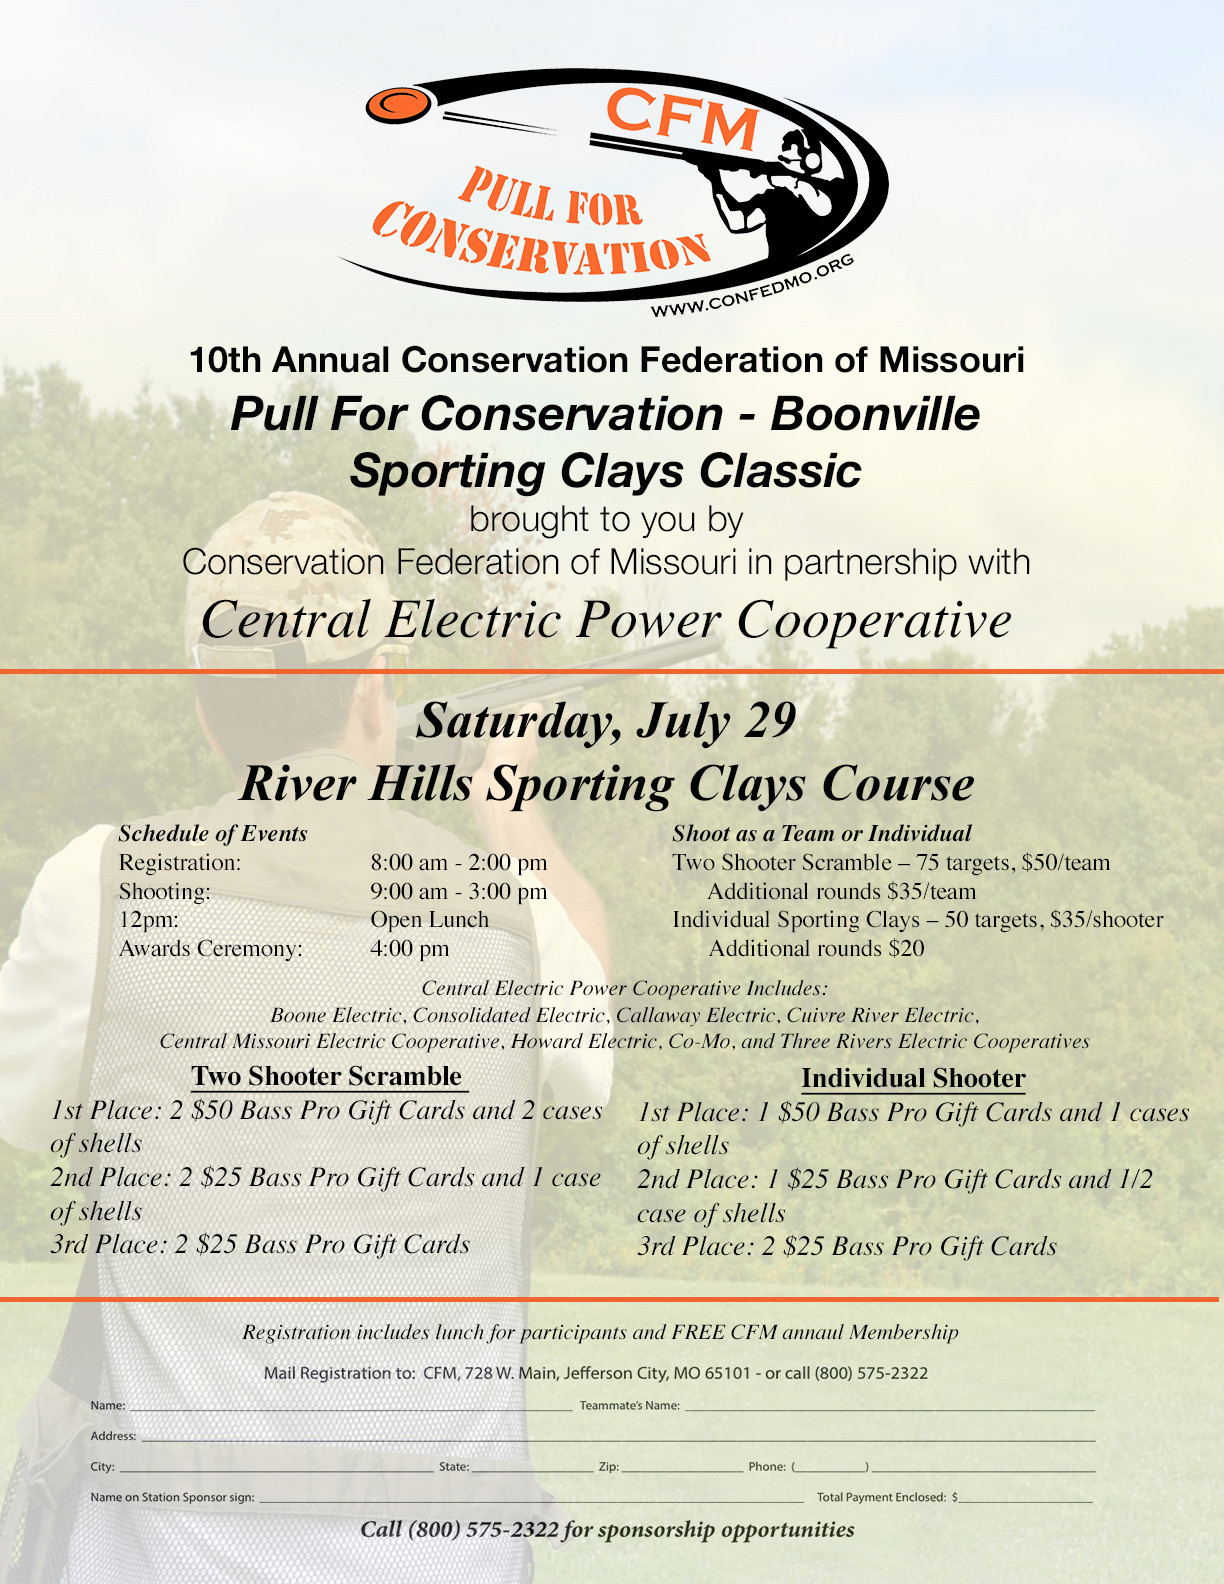 2016 Pull for Conservation Advertisement